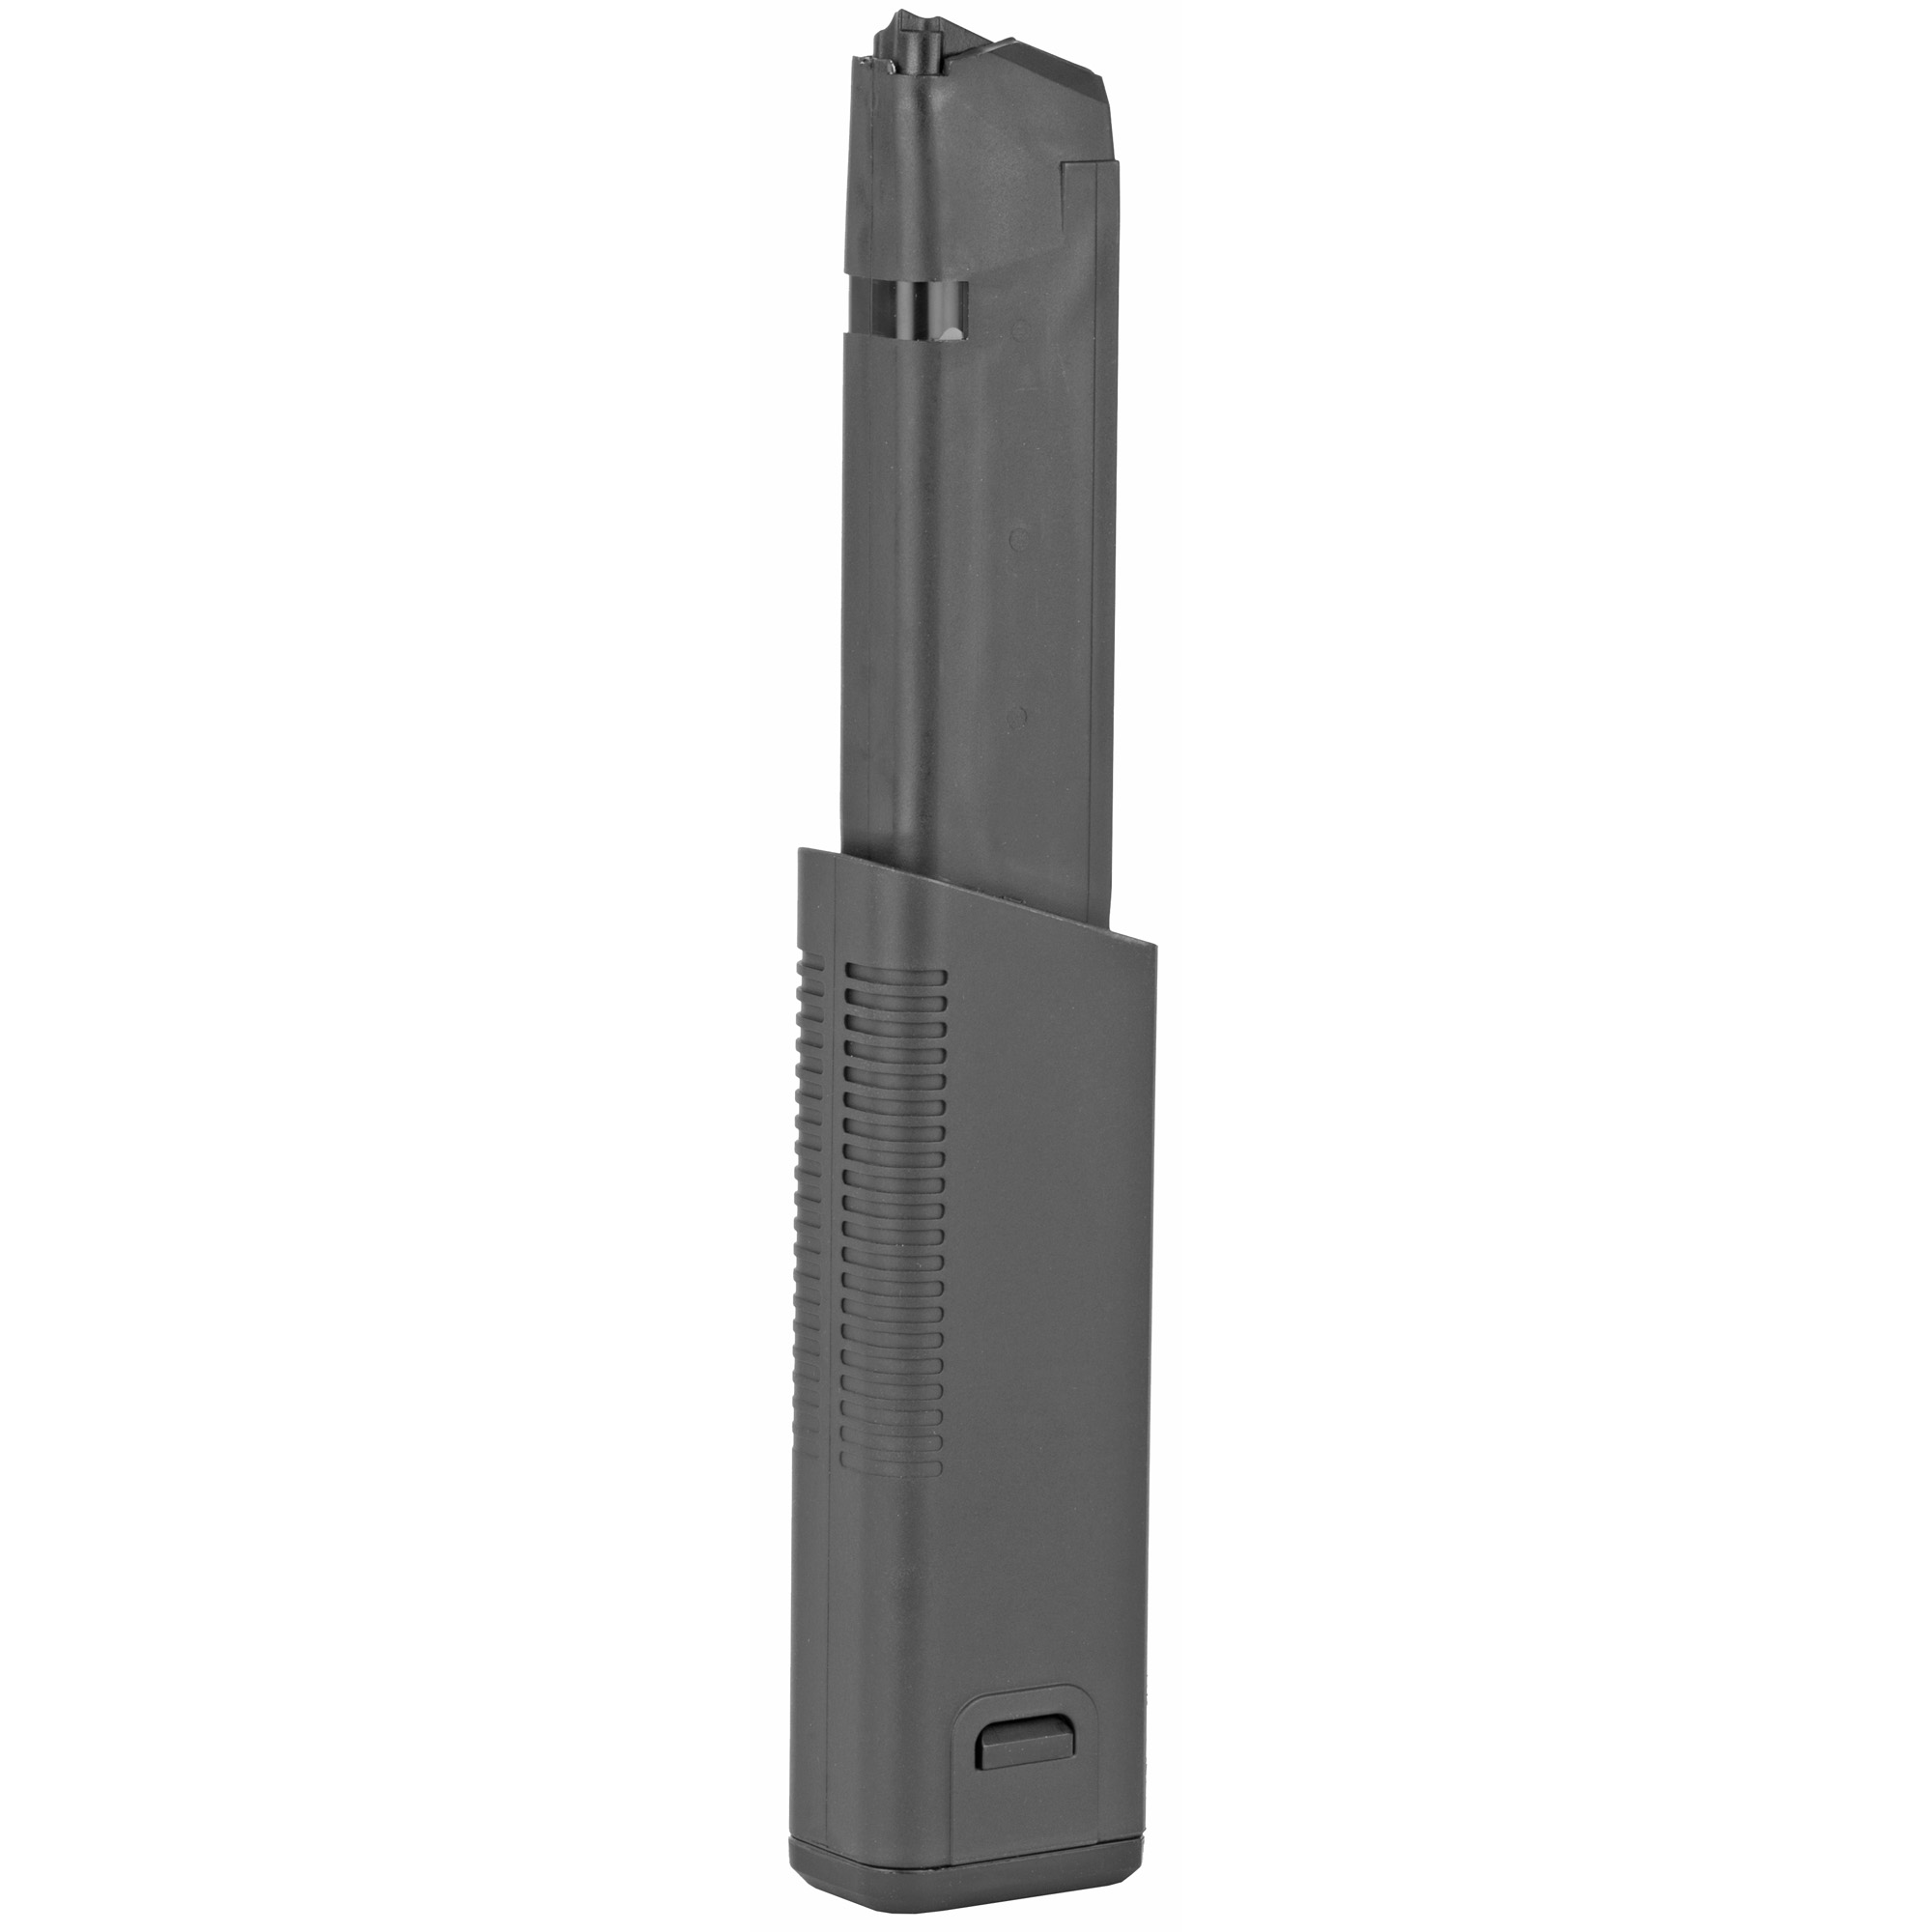 """The KRISS Mag-Ex2 extended magazine is a fully assembled Mag-Ex Kit 2 with a factory standard Glock Magazine. The Mag-Ex 2 is the perfect match of reliable feeding"""" toughness"""" and aesthetics for the KRISS Vector. The Mag-Ex 2 is available in 9mm and 10mm; for an overall capacity of 40 rounds of 9mm"""" and 33 rounds of 10mm for your KRISS Vector"""" Glock handgun"""" and your Glock magazine-compatible pistol caliber carbine."""